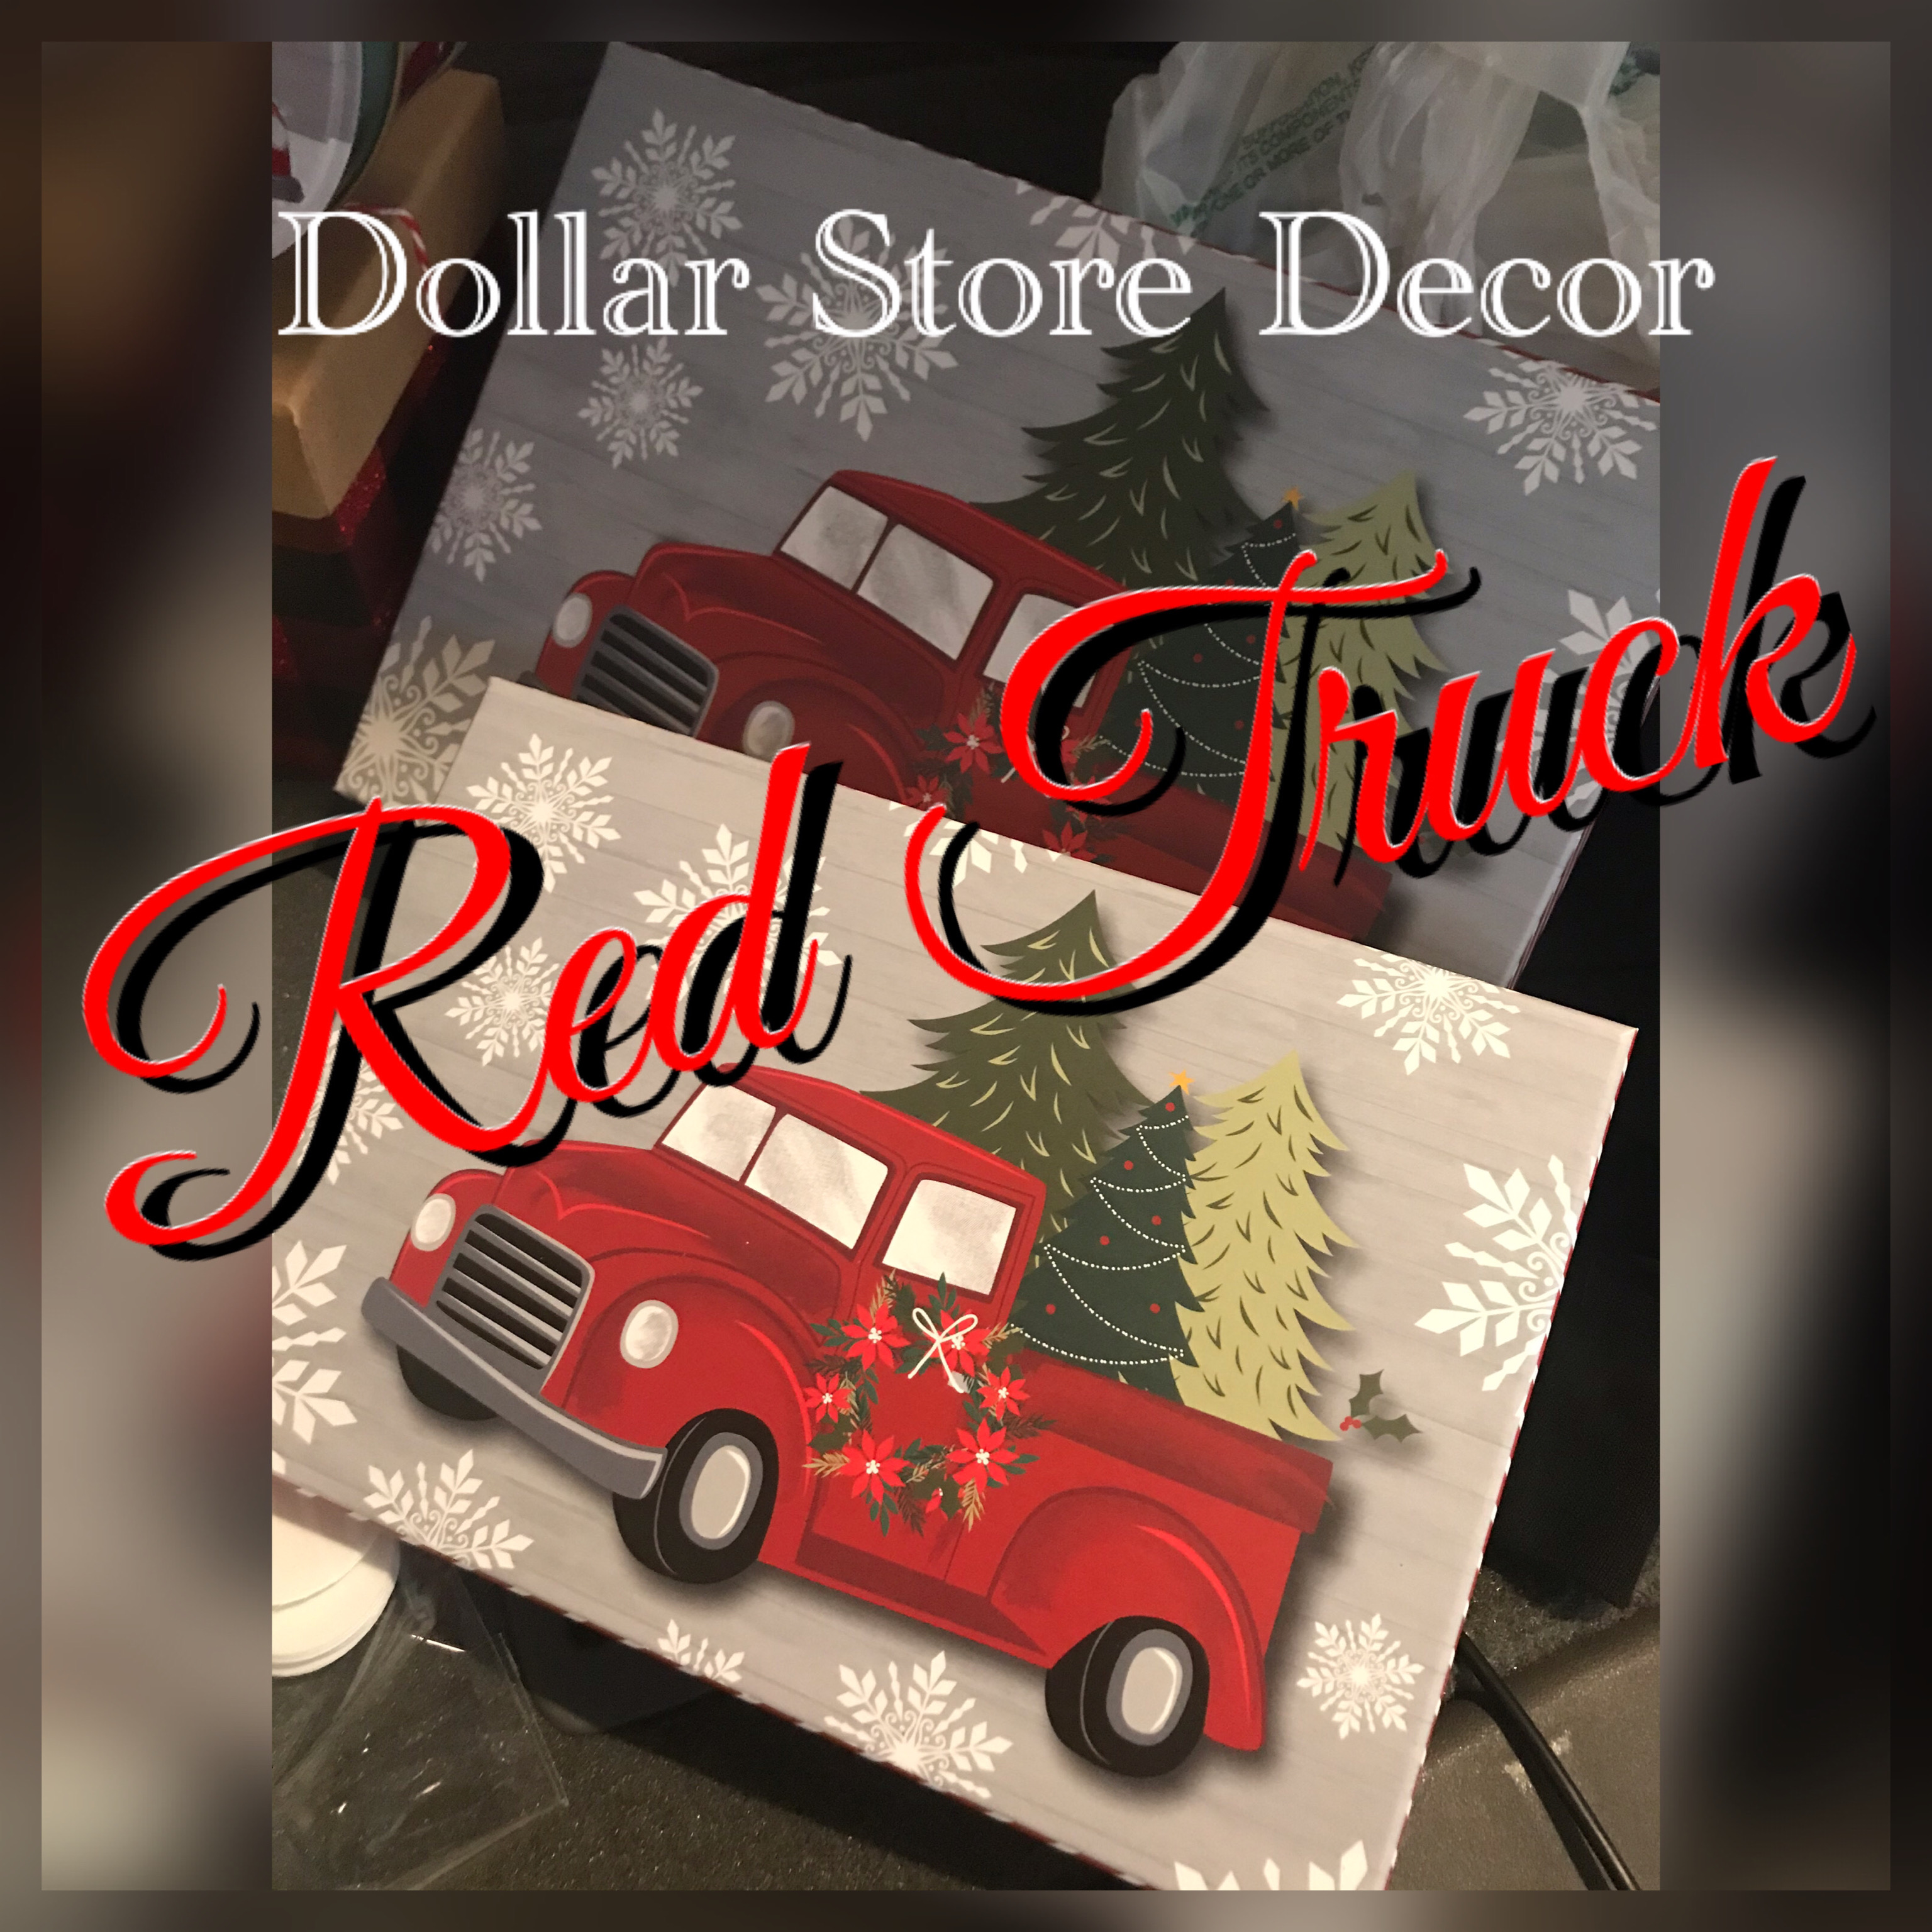 Red Truck Christmas Decor at the Dollar Stores!